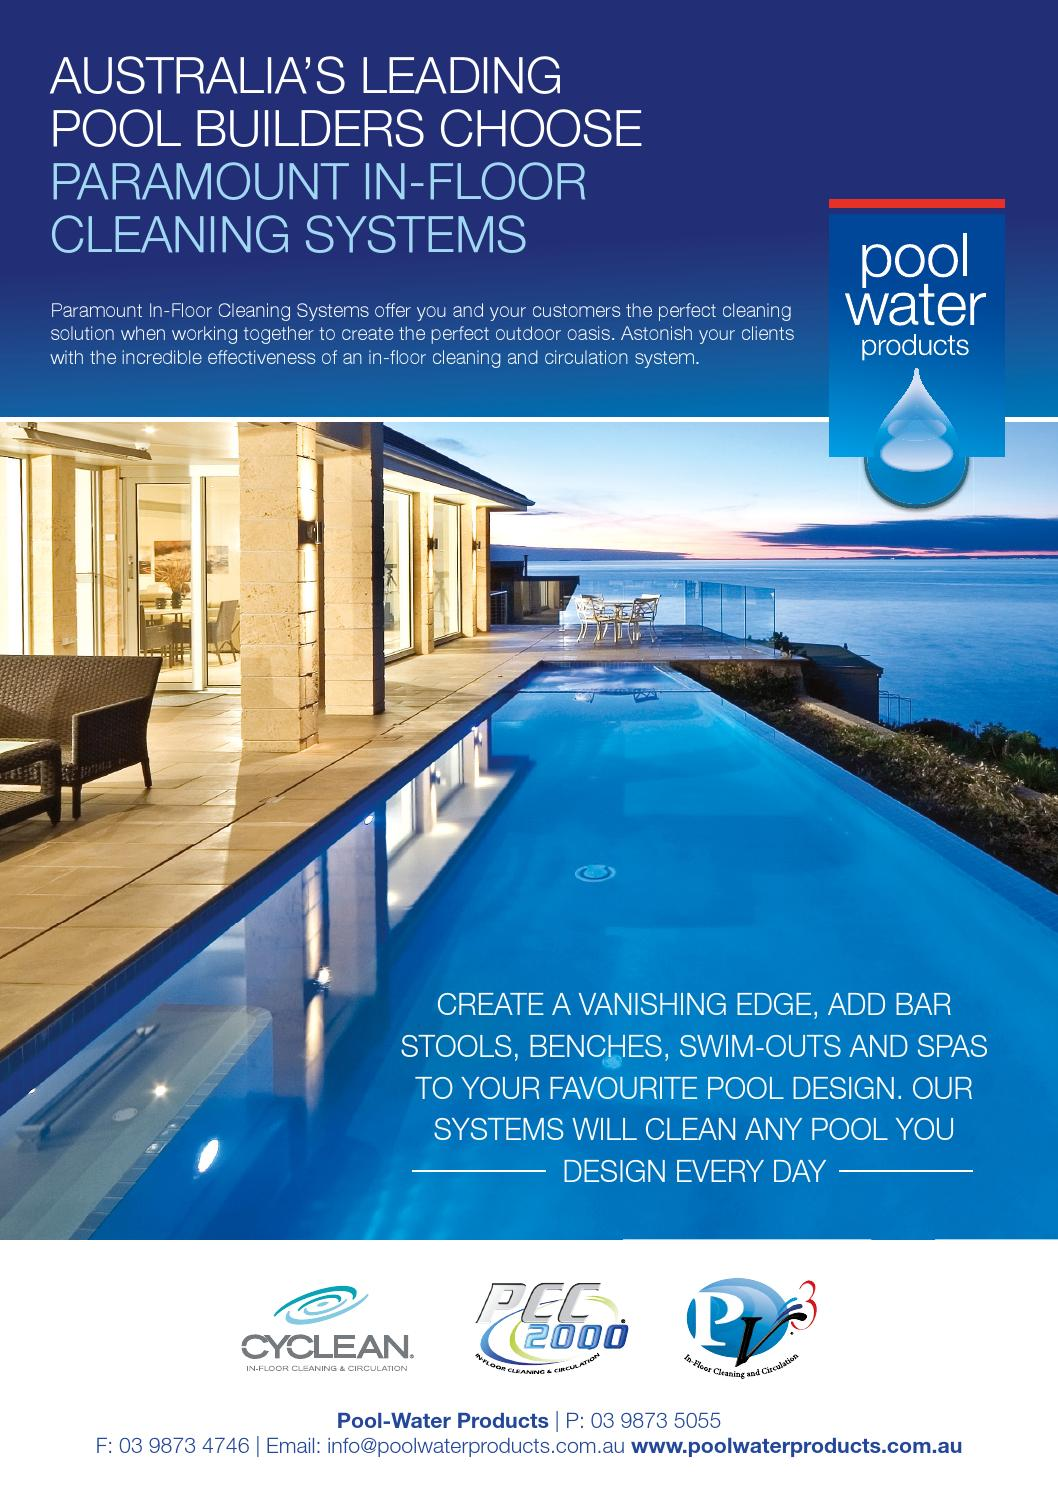 Splash Apl May 2015 Issue 99 By The Intermedia Group Issuu